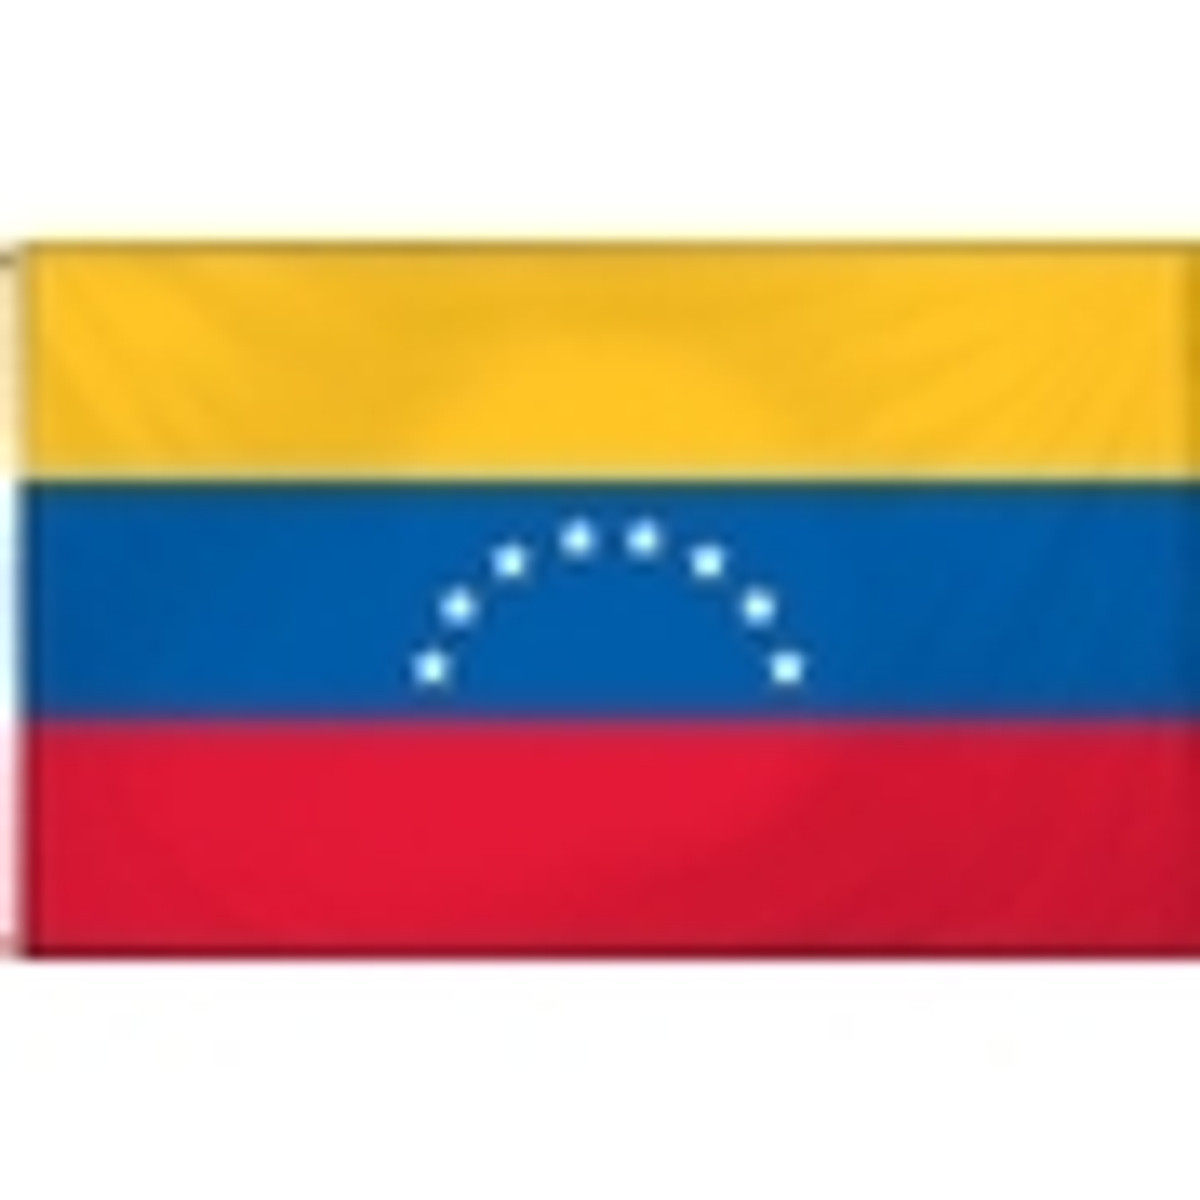 Venezuela With Seal Flags